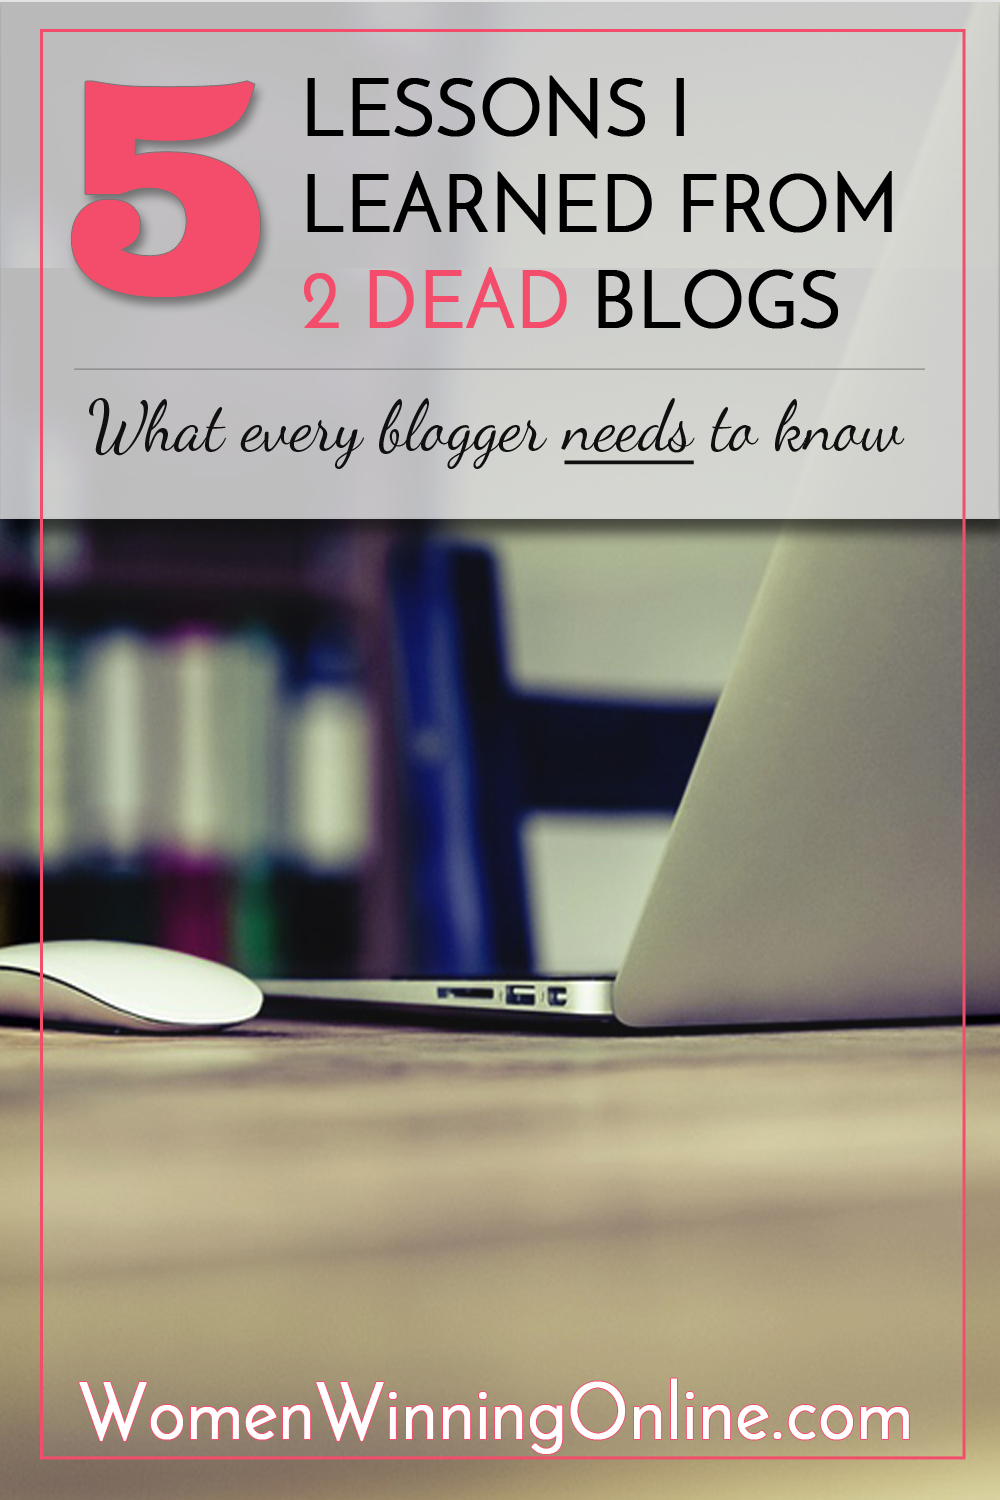 5 lessons I have learned from 2 dead blogs